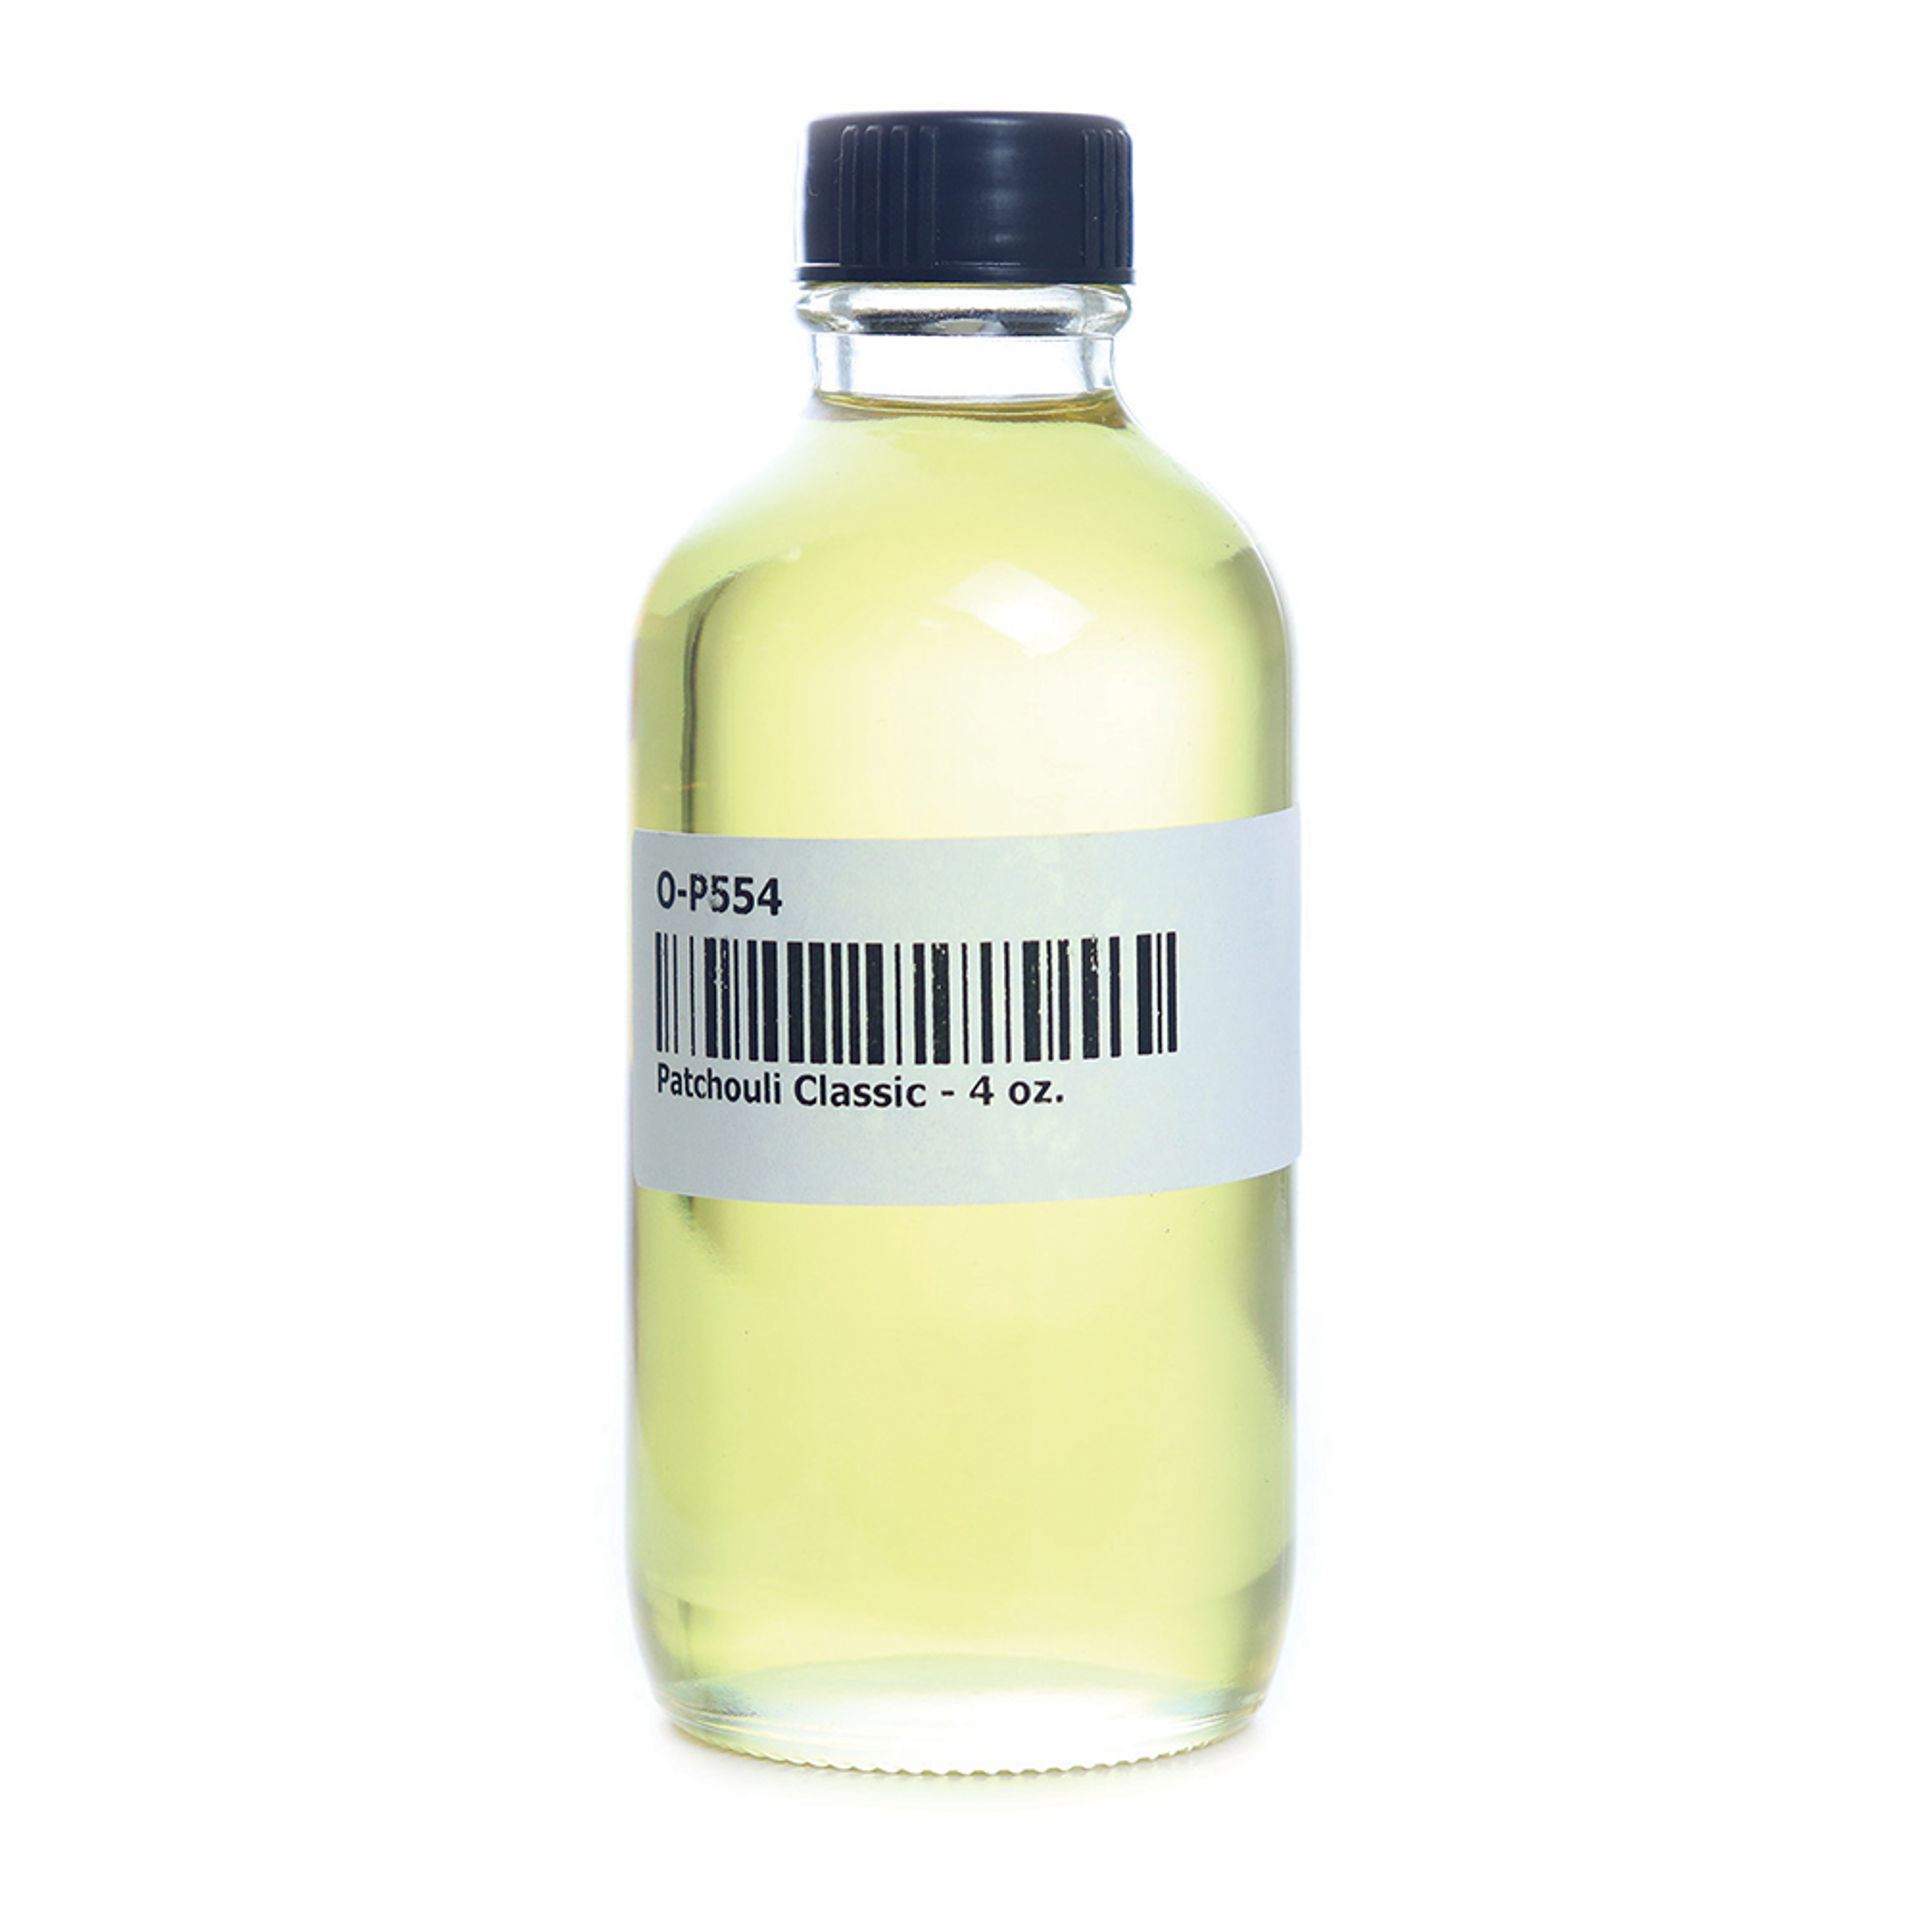 Picture of Patchouli Classic - 4 oz.